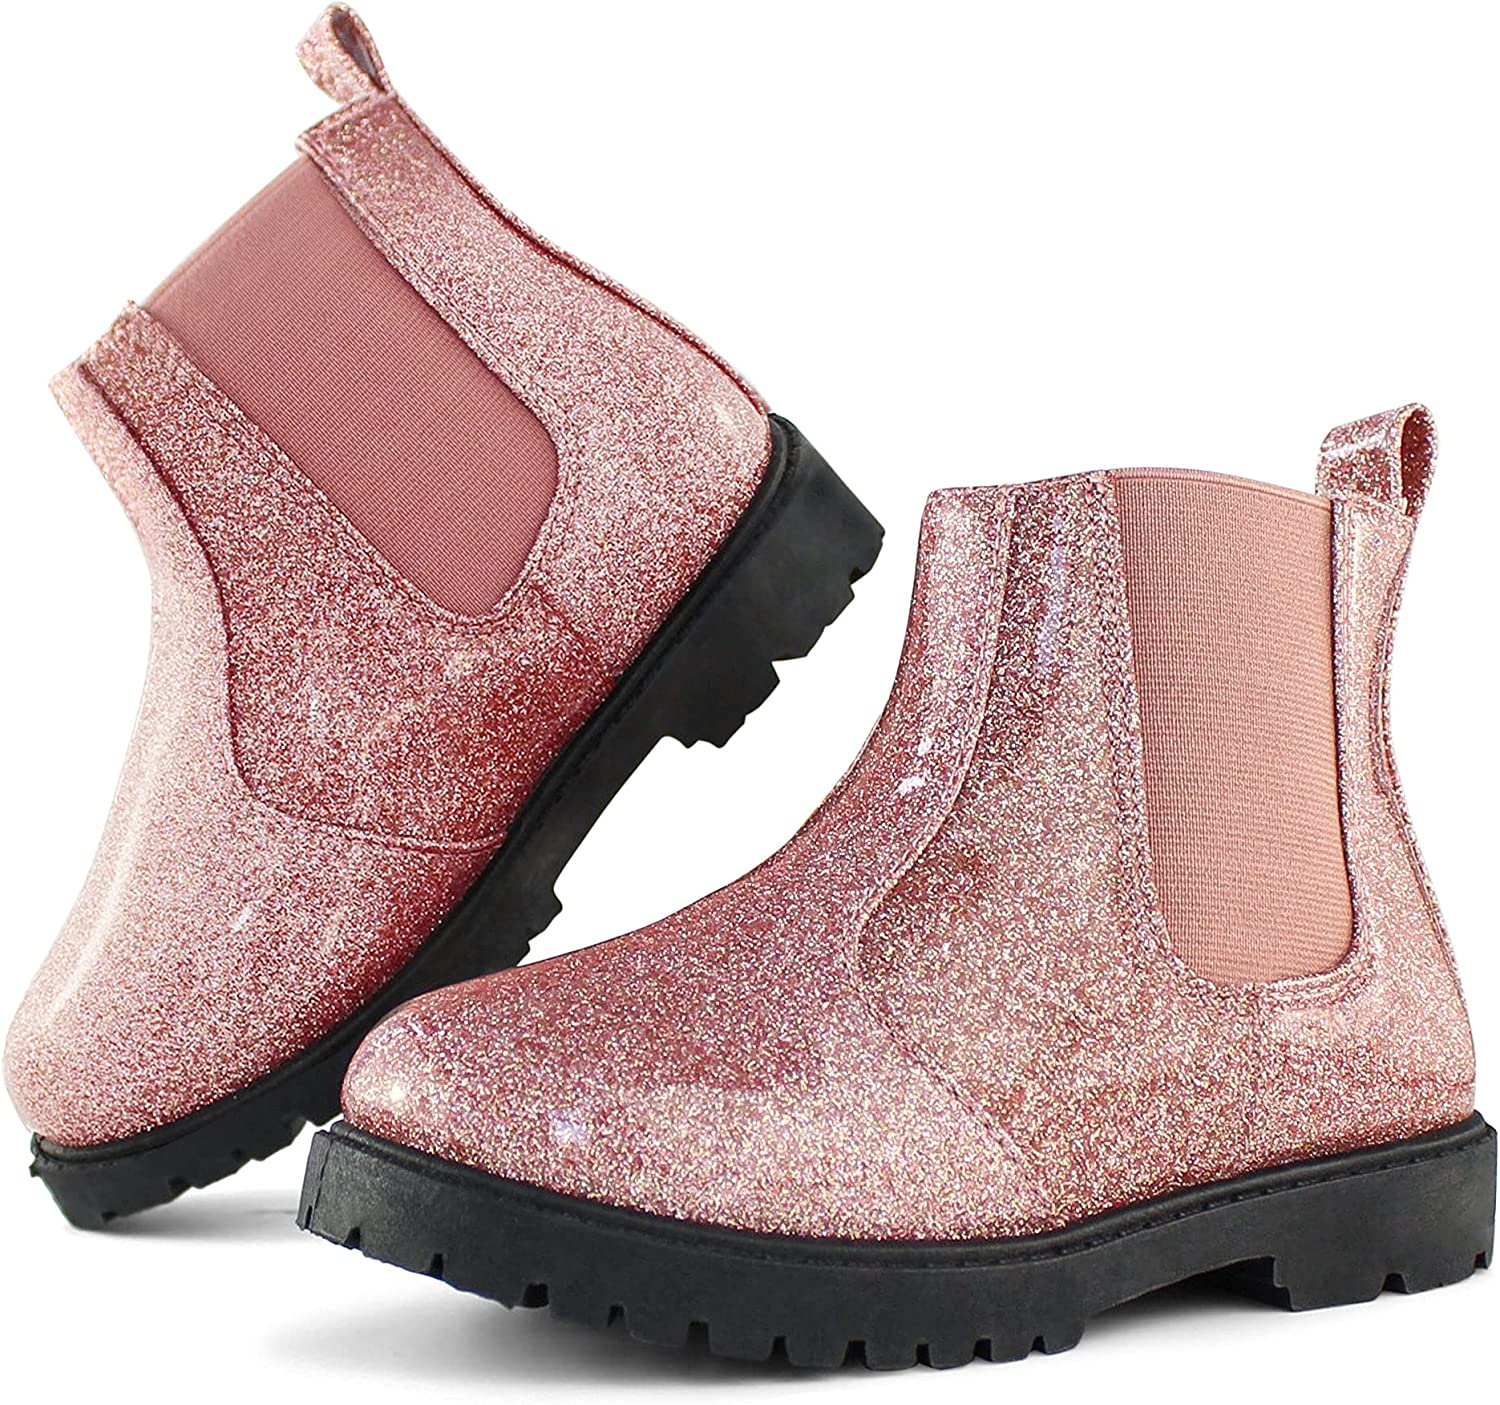 Tobfis New Orleans Mall Girl's Award Fashion Glitter Chelsea Boot Toddler L Boots Ankle